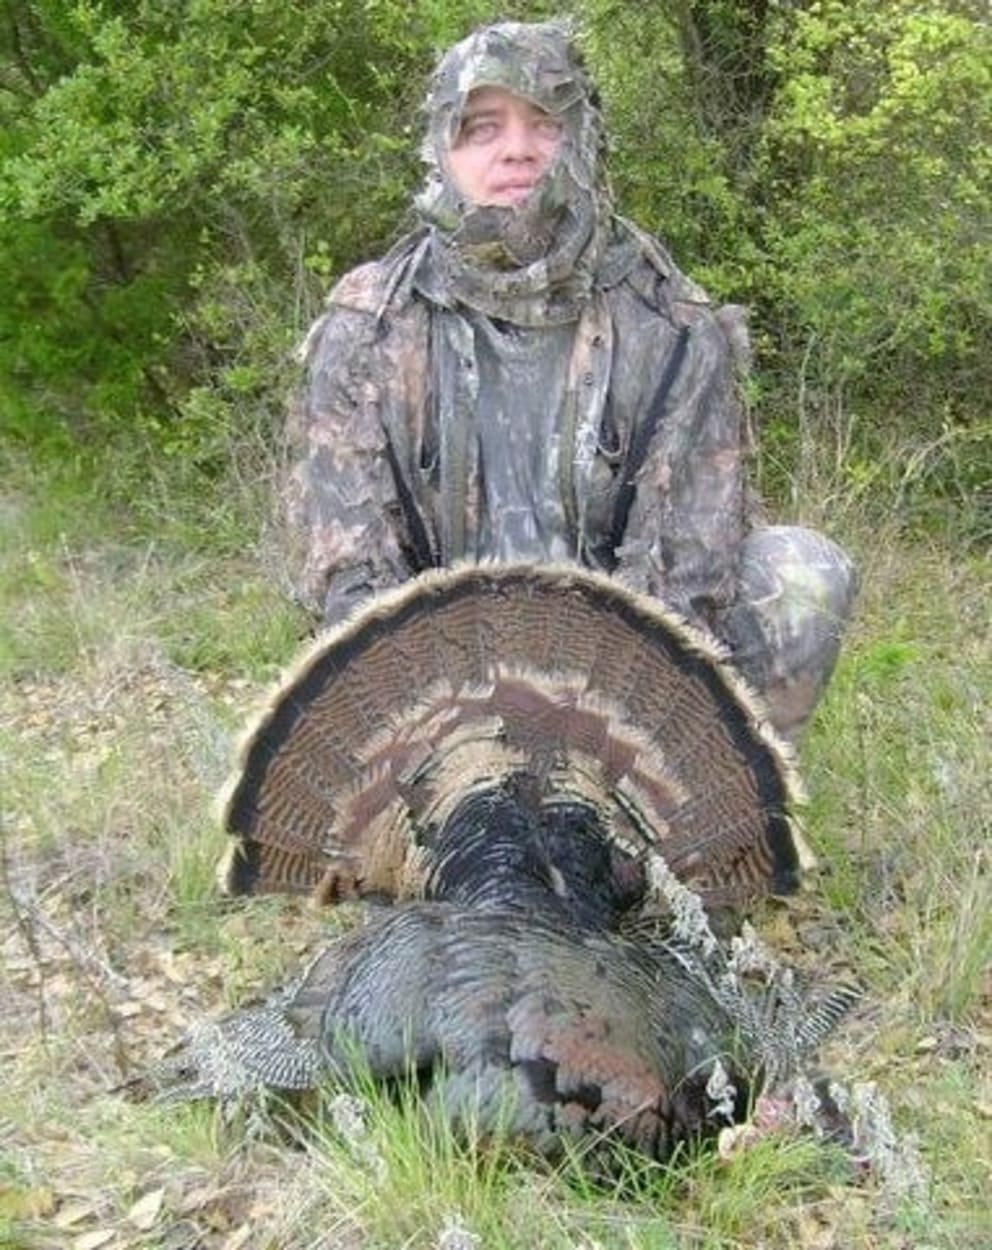 Philip with a turkey